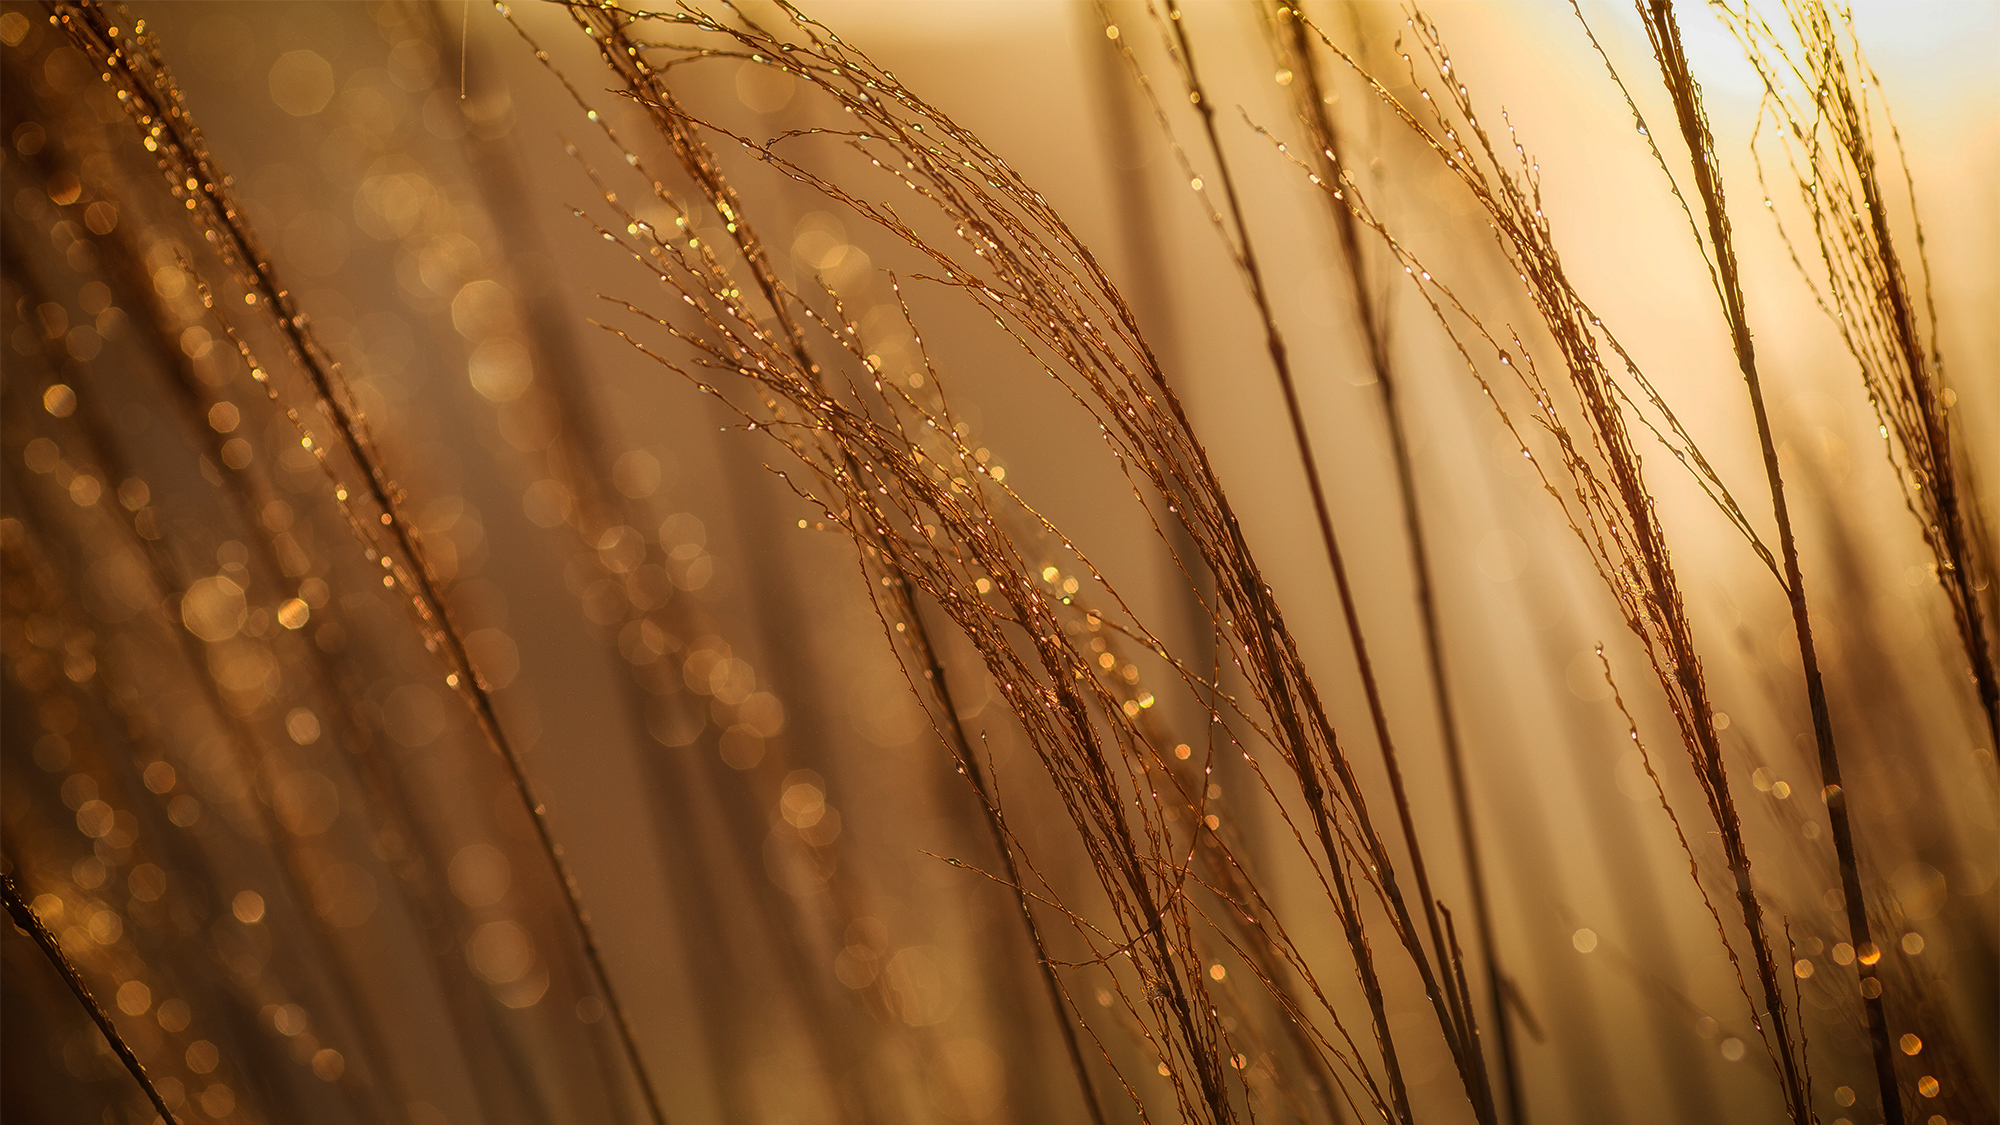 Black Sea wheat price rallied after WASDE